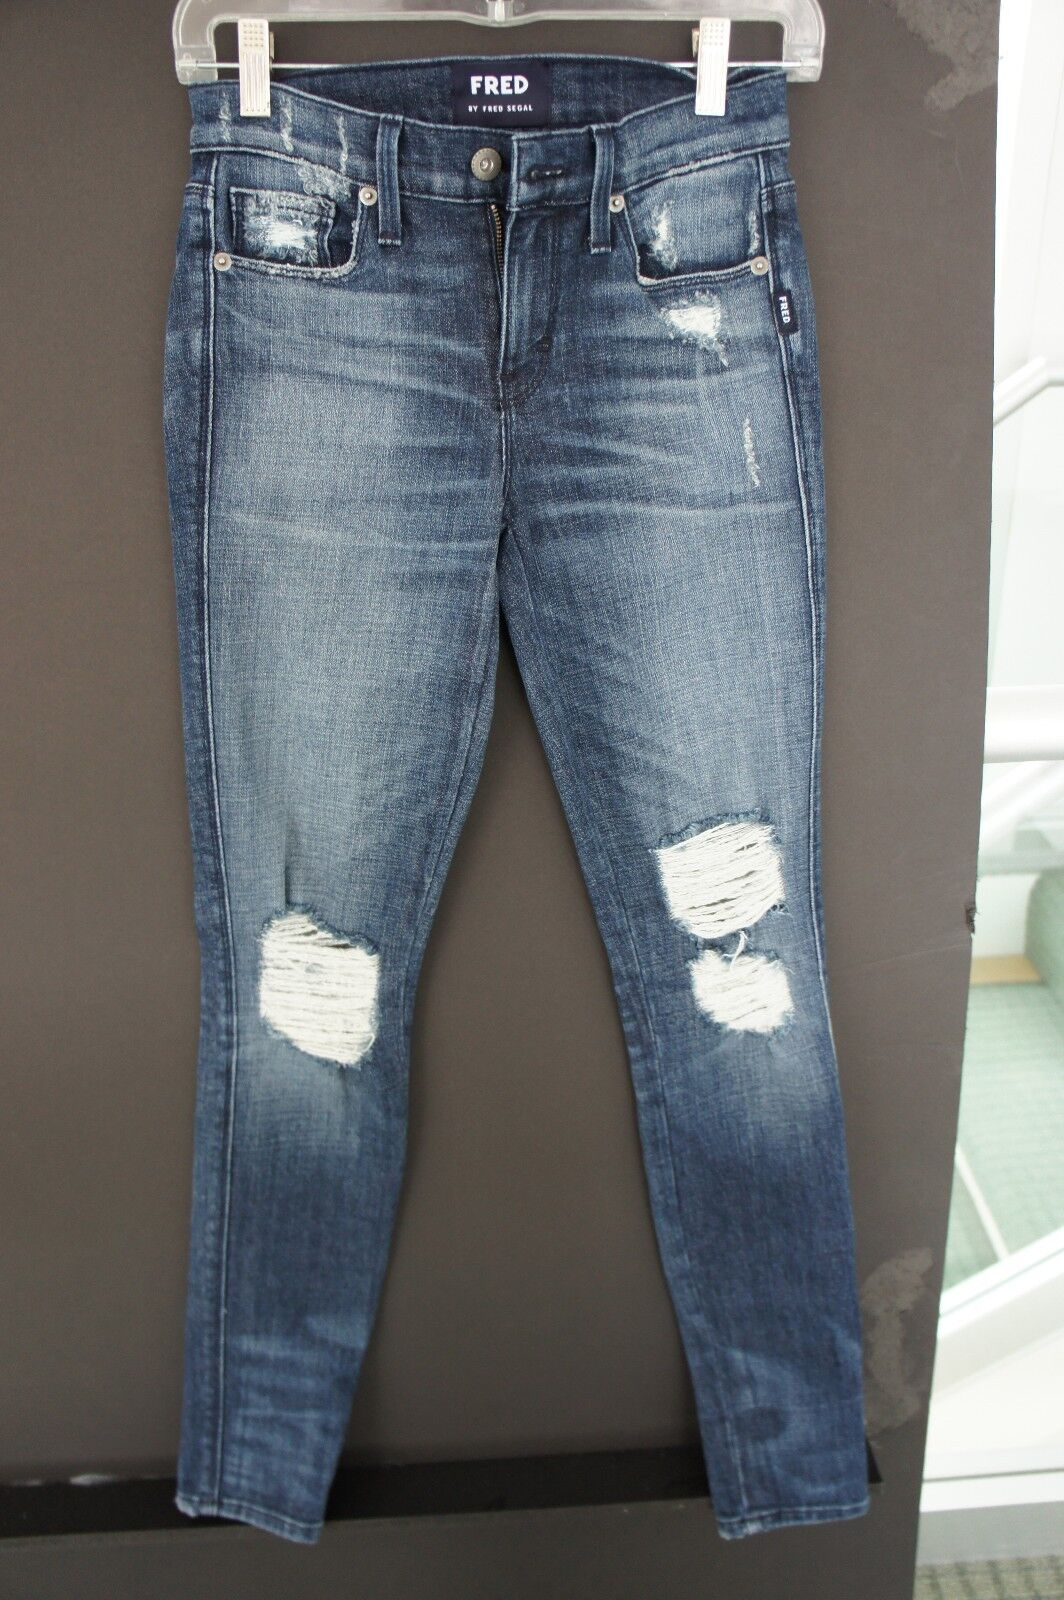 Fred by Fred Segal Denim Jean Size 25